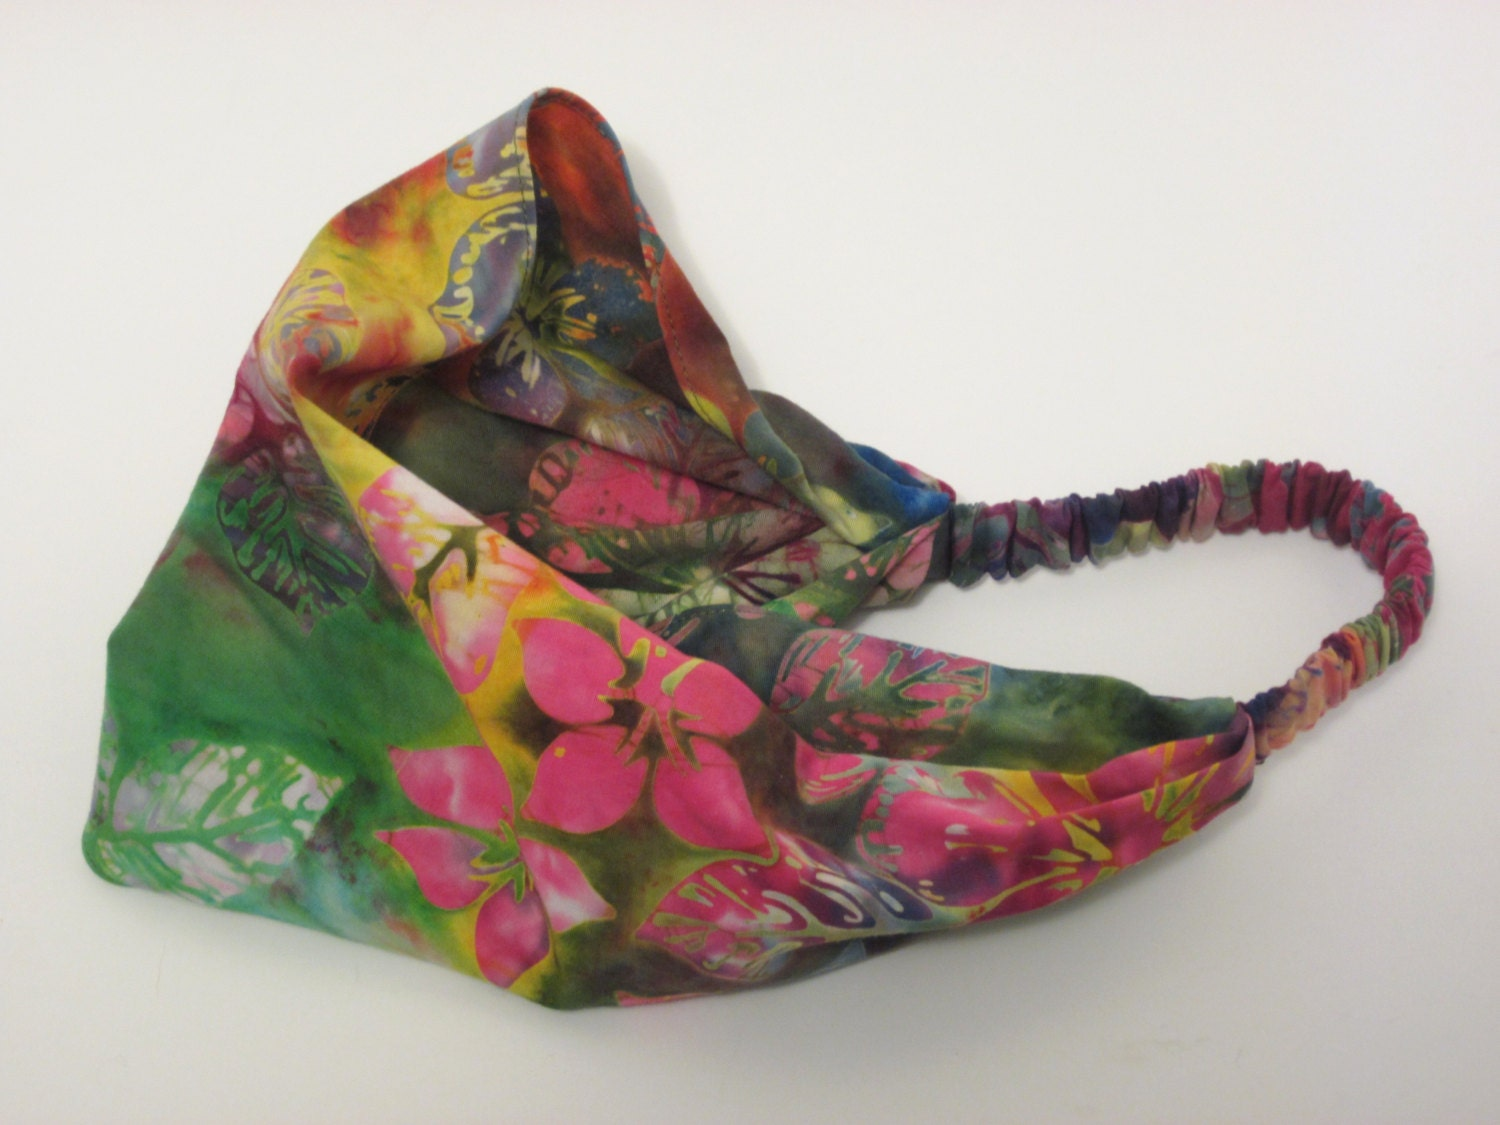 Tropical Flower Batik Head band in Green, Blue, Purple Pink, Orange and Yellow Cotton Batik Handmade by Thimbledoodle